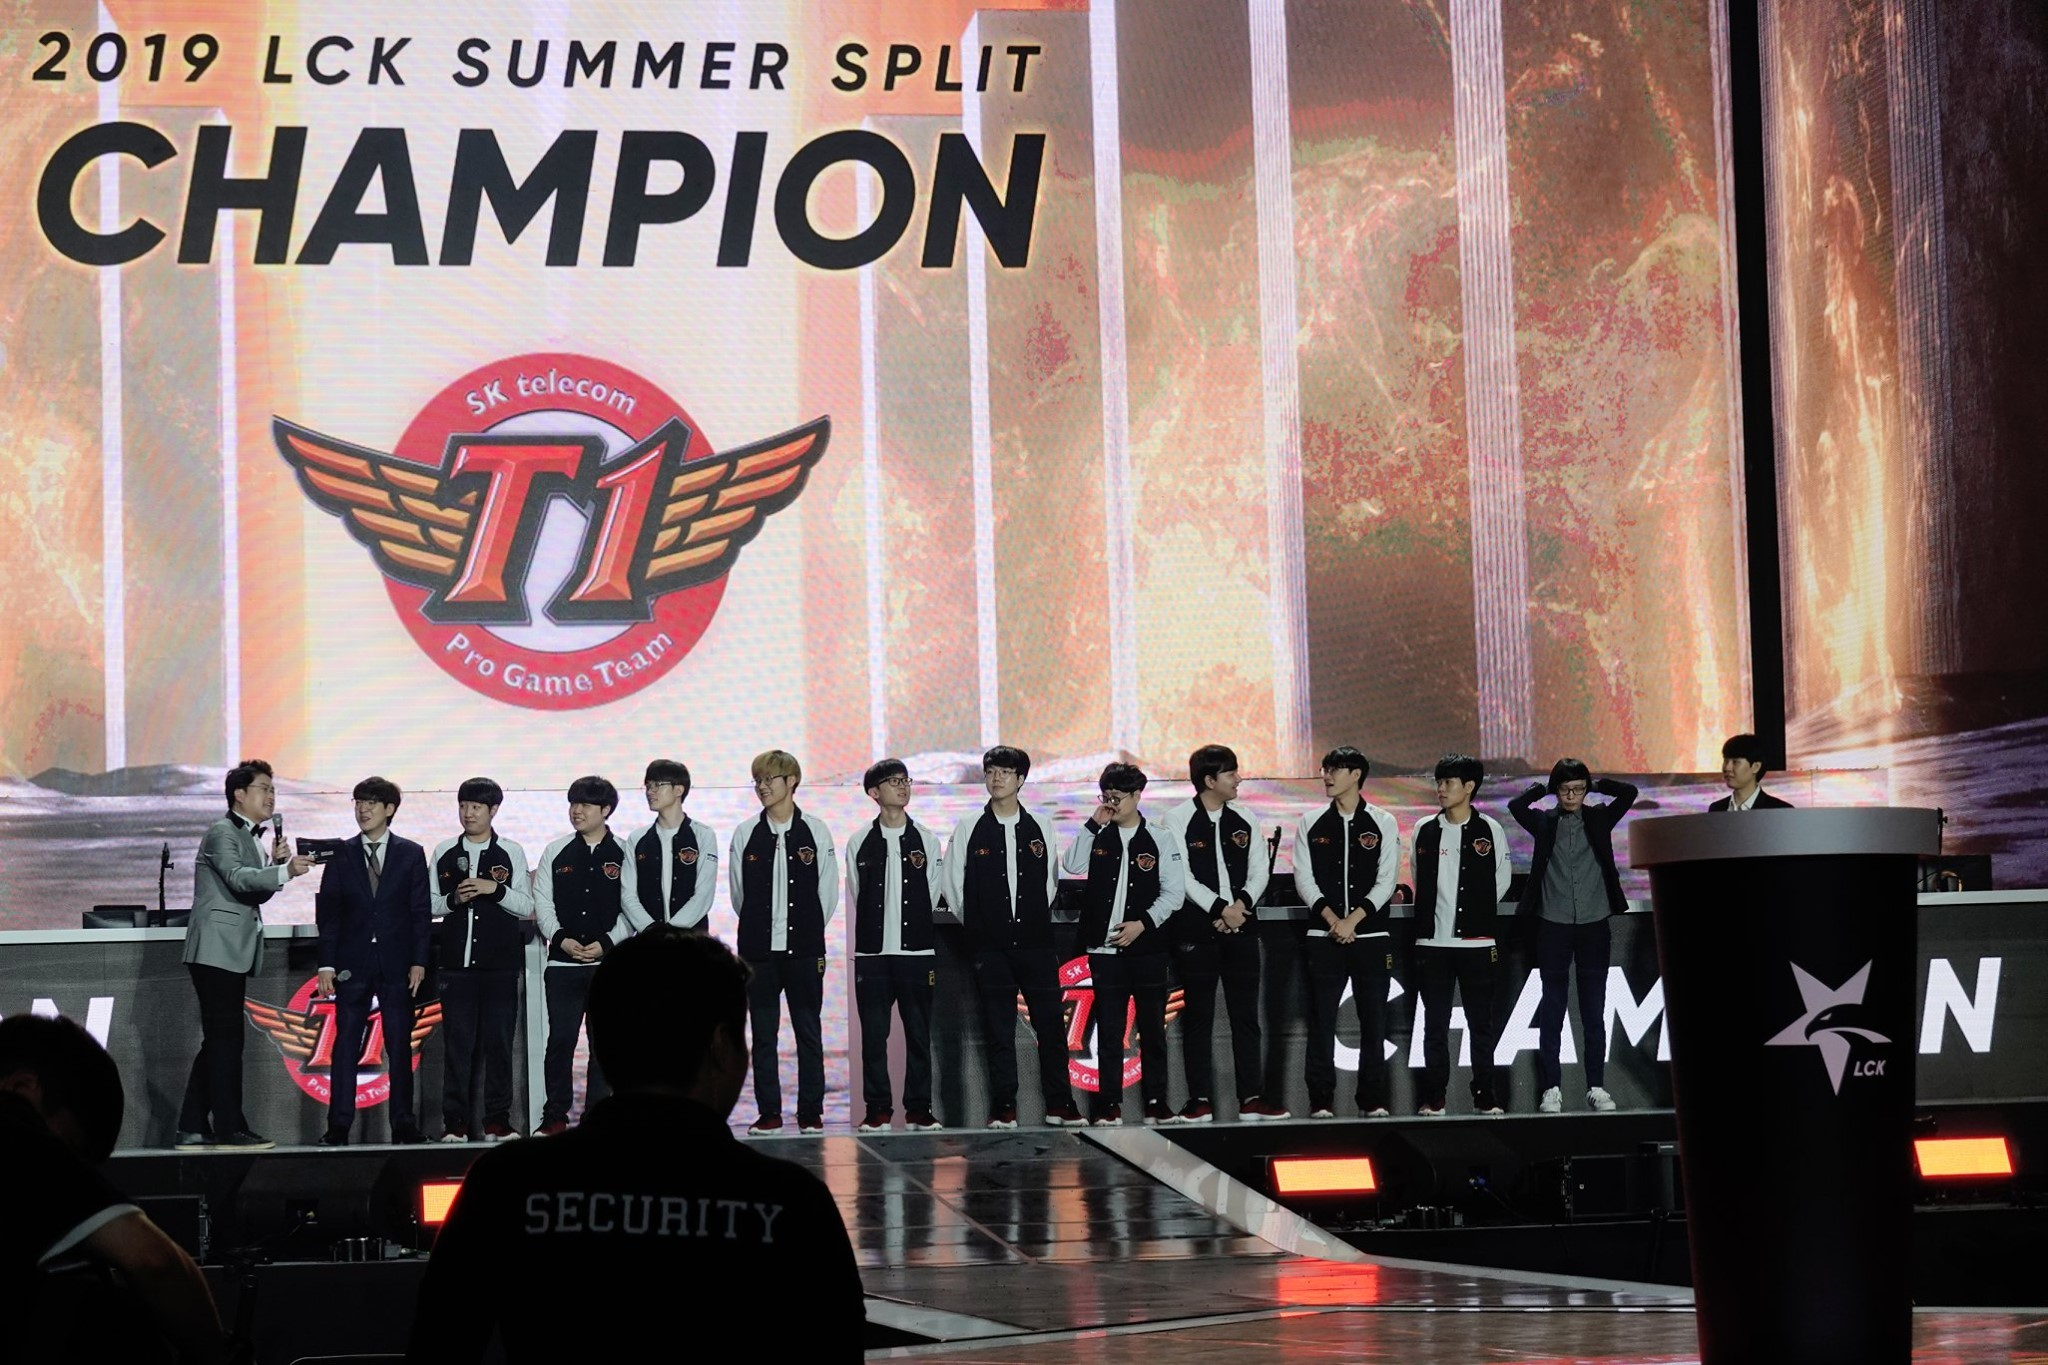 SKT are the LCK champions of Korea this summer - League of